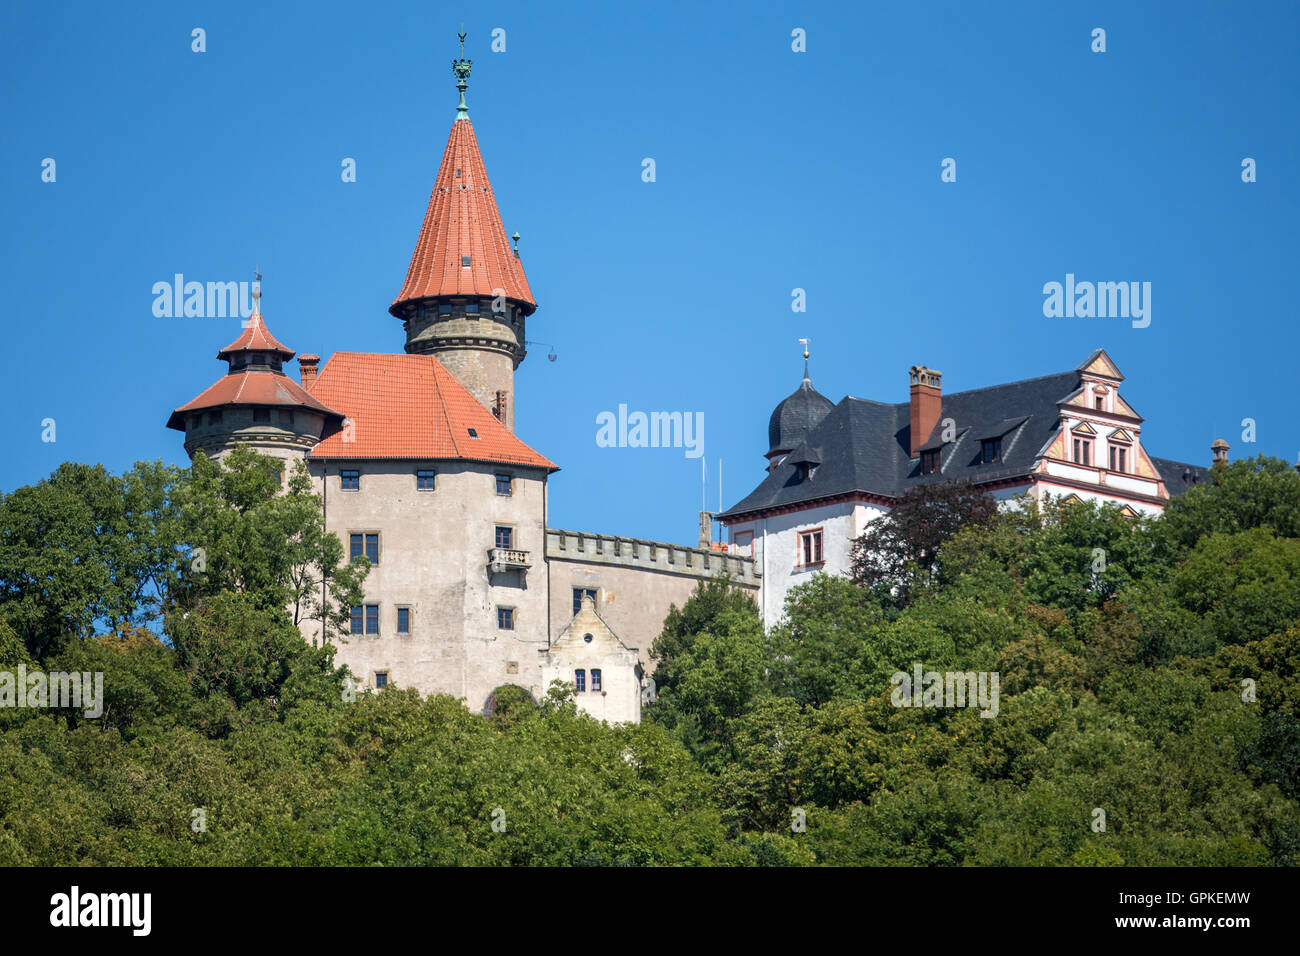 31st aug 2016 heldburg castle in heldburg germany 31 august 2016 the new deutsches burgenmuseum lit german castles museum is due to open on 8 - Open Castle 2016